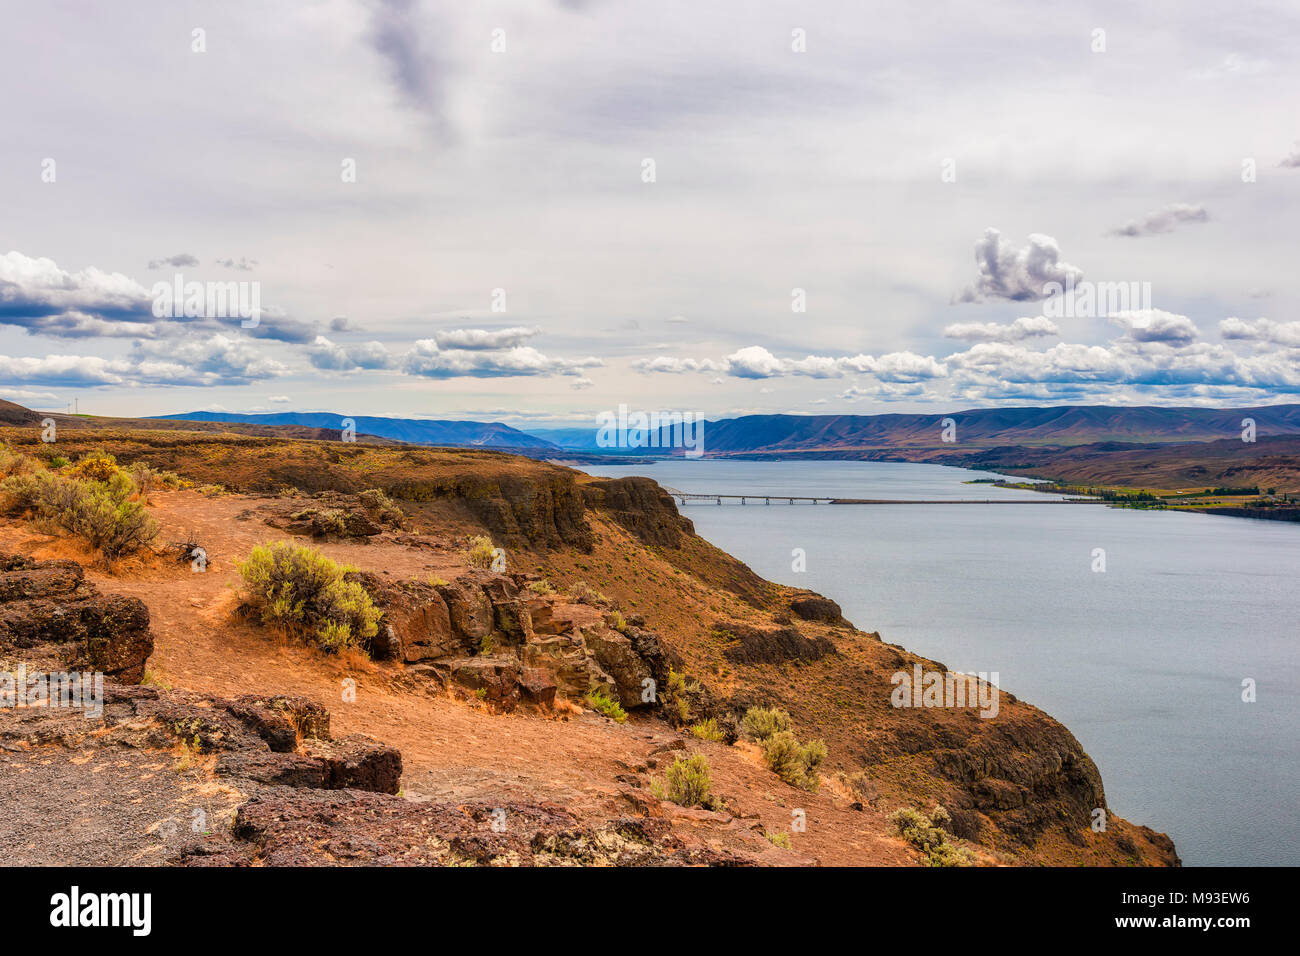 Columbia River Gorge landscape under cloudy skies near Tri-Cities in Washington State - Stock Image